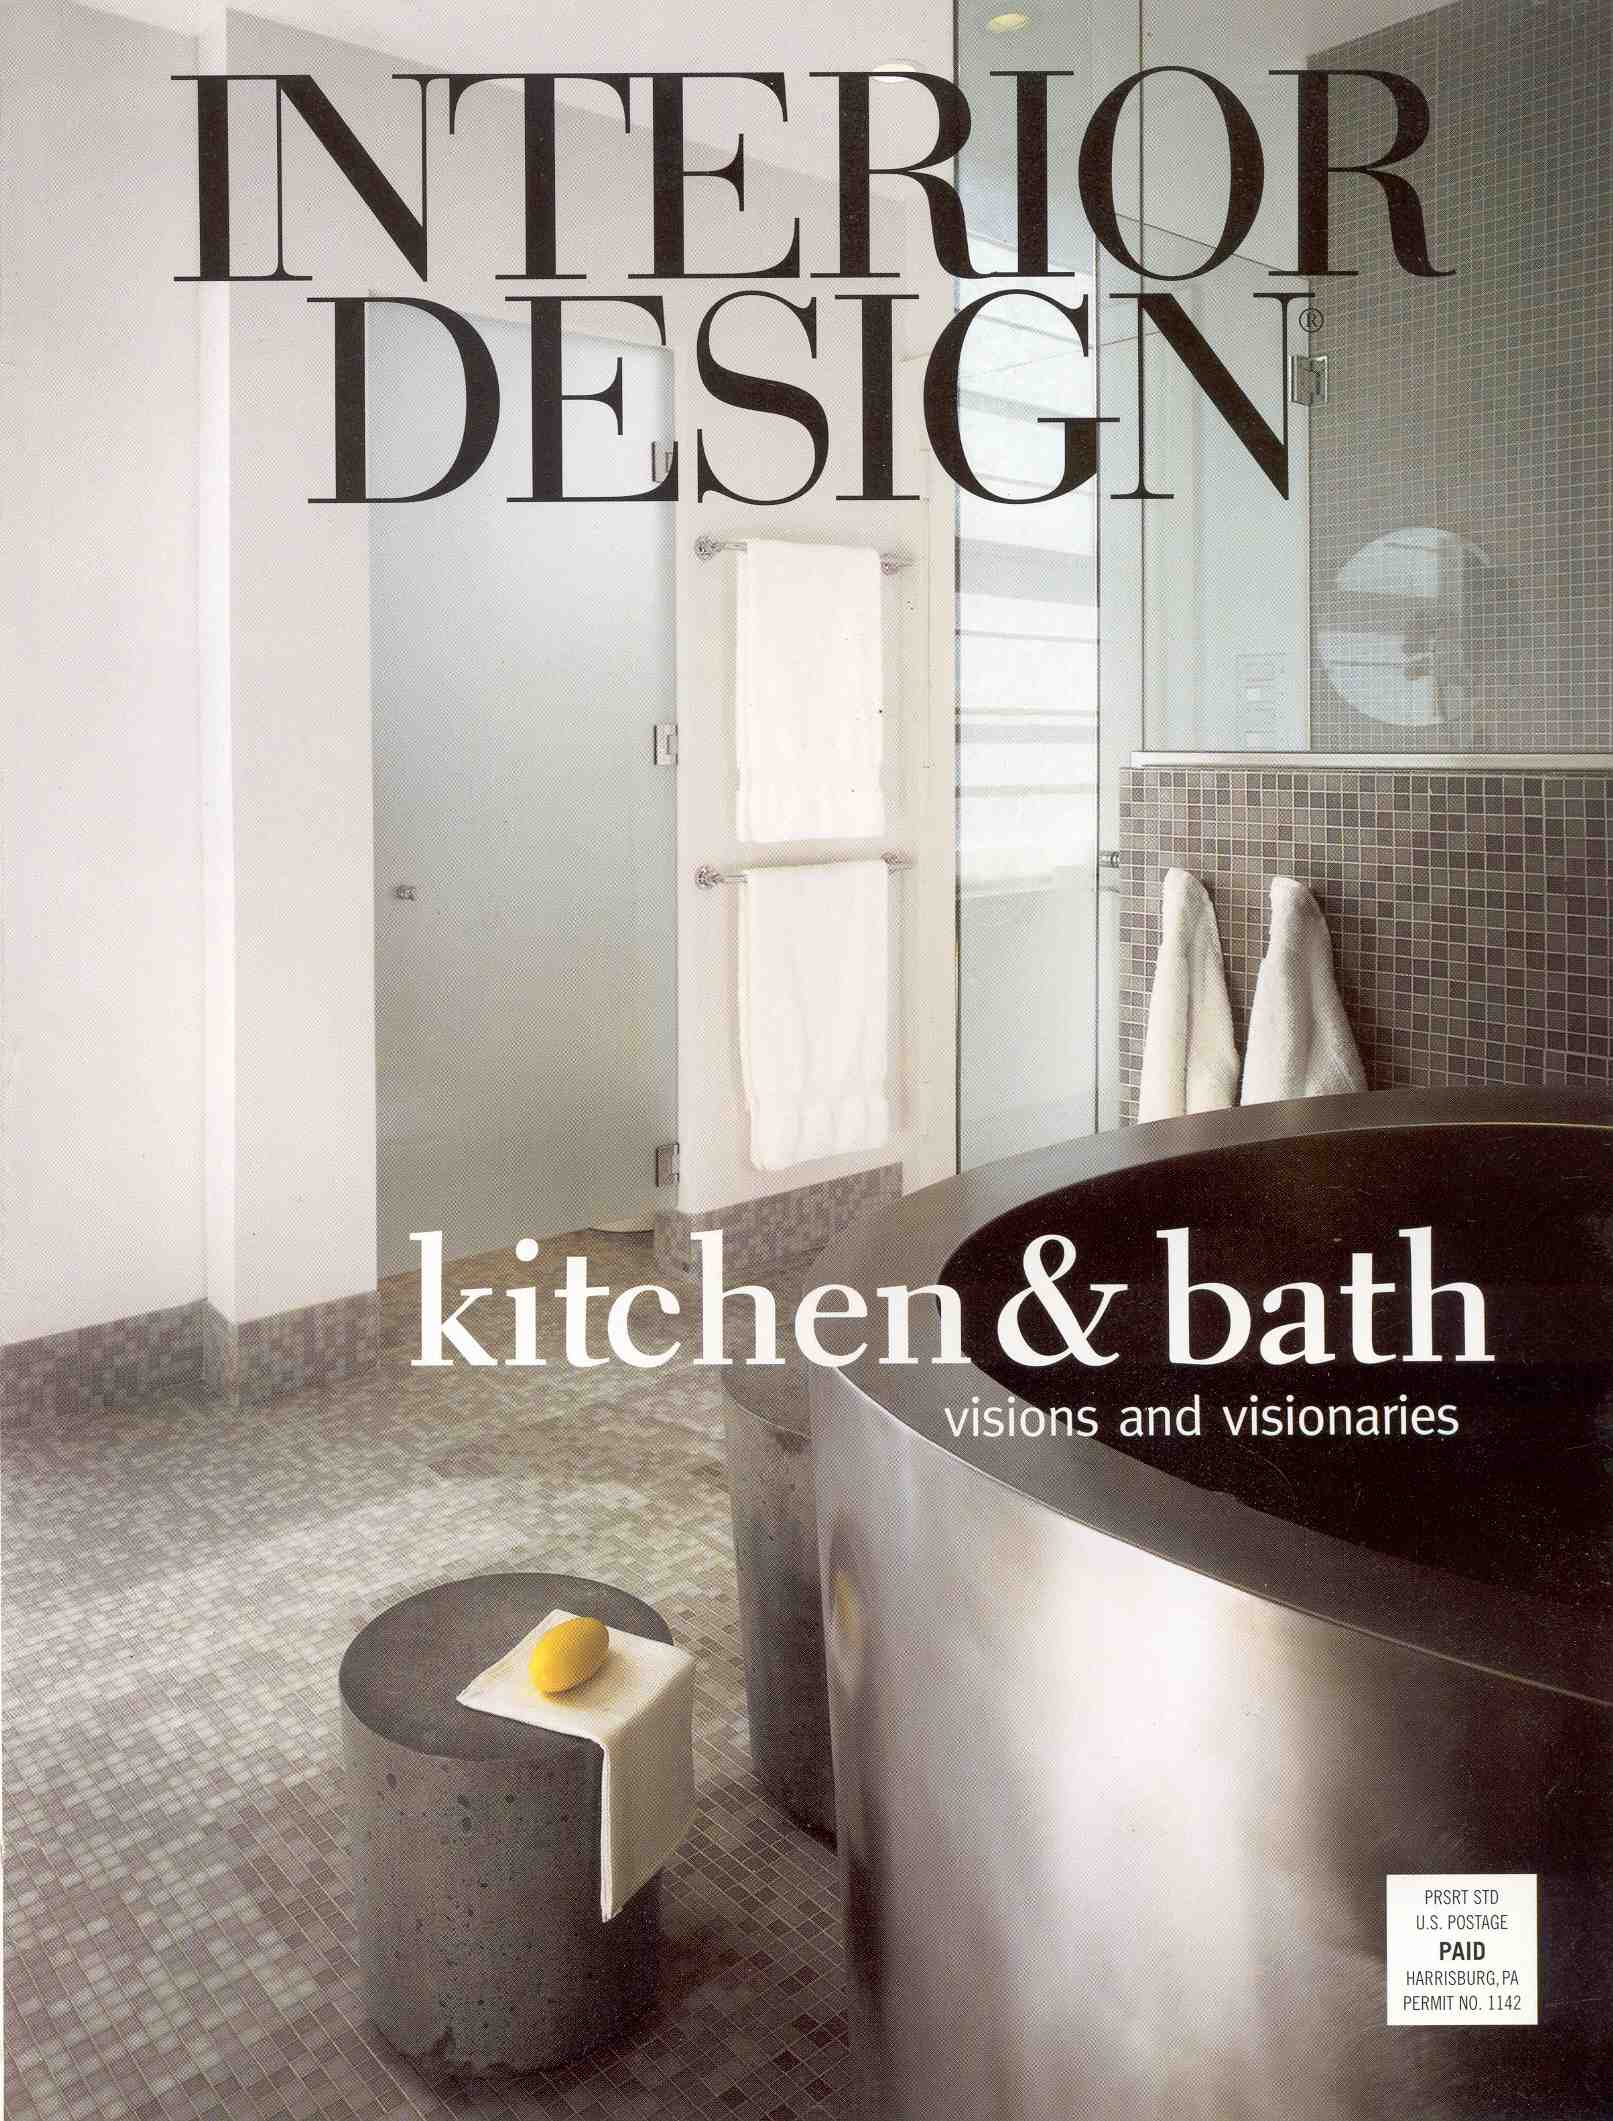 Lucianna samu renovations featured in interior design magazine - Design interer ...